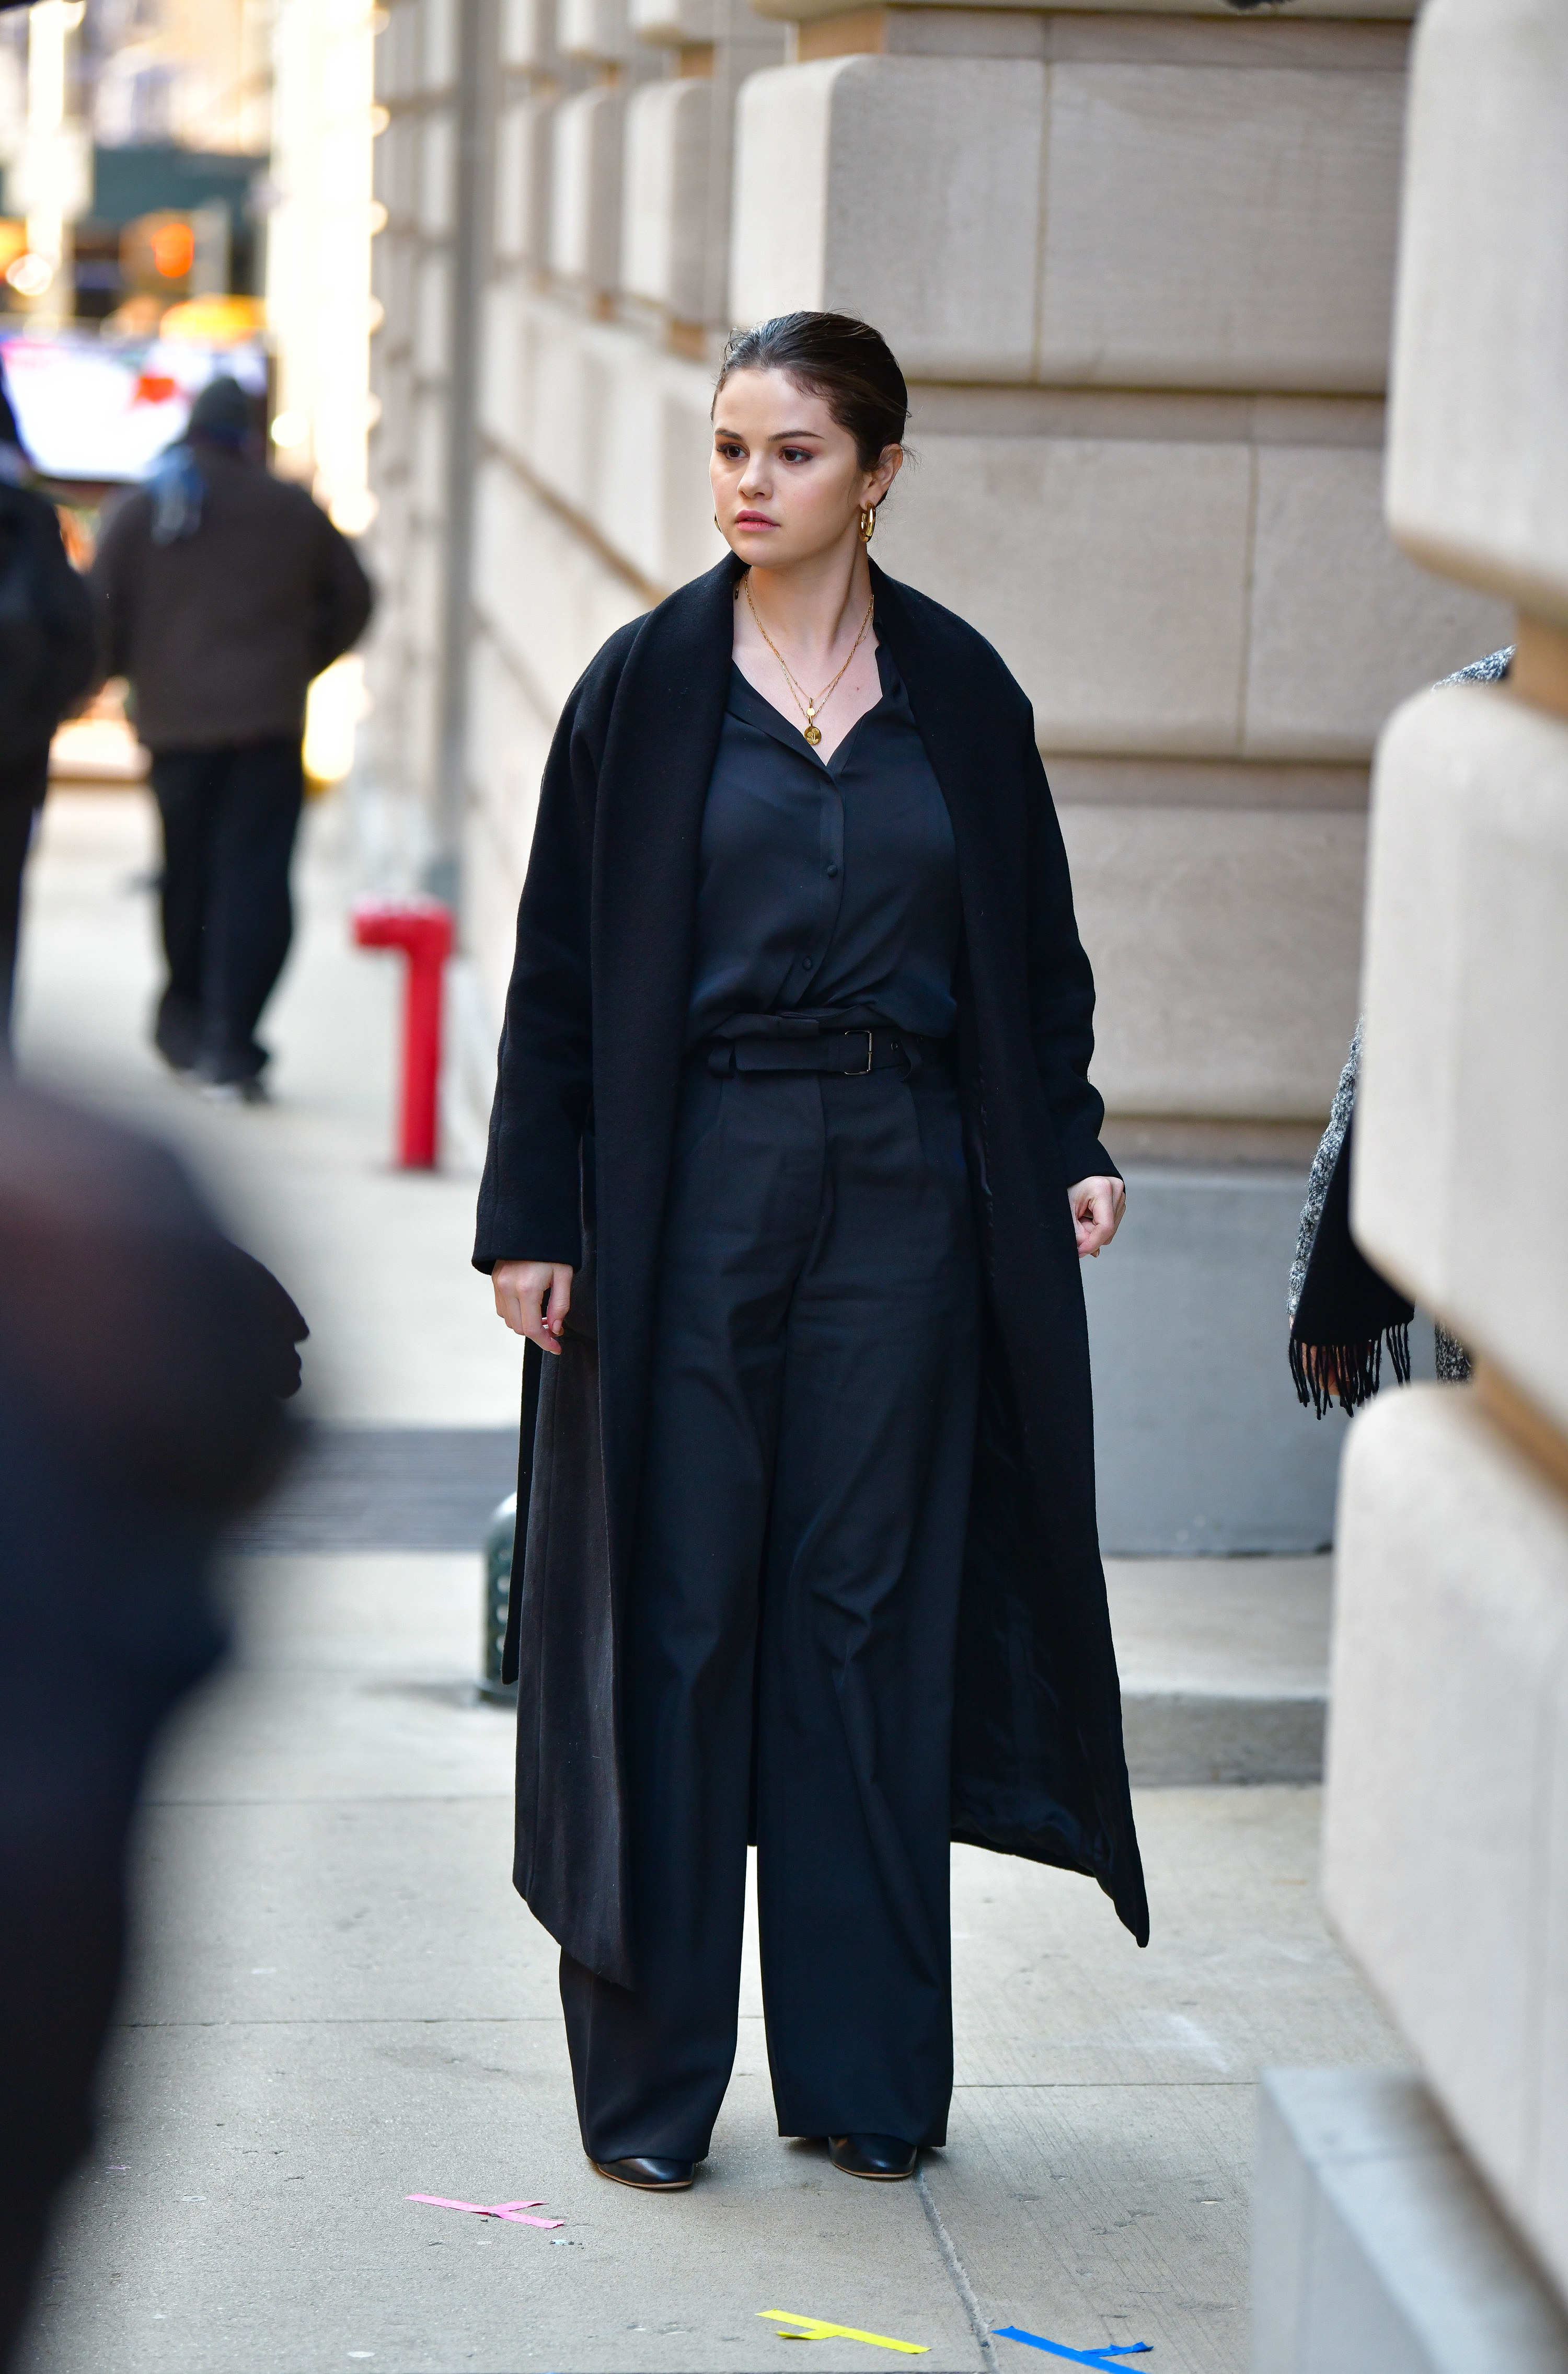 Selena Gomez is photographed on the set of Only Murders in the Building